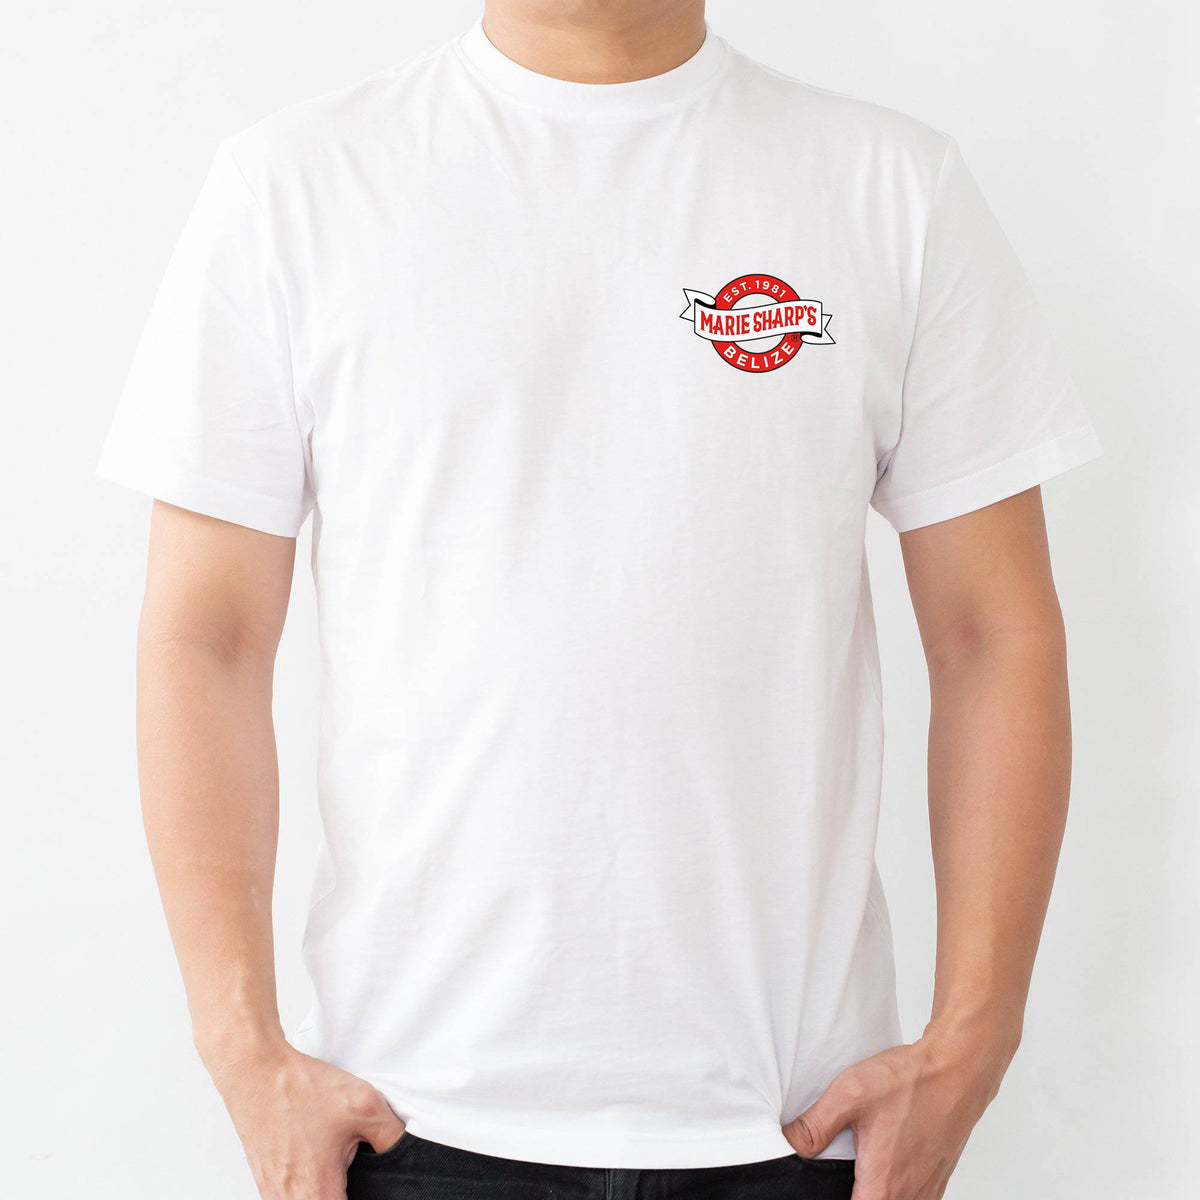 T-Shirt - Natural Wonders - Unisex - Marie Sharp's Company Store